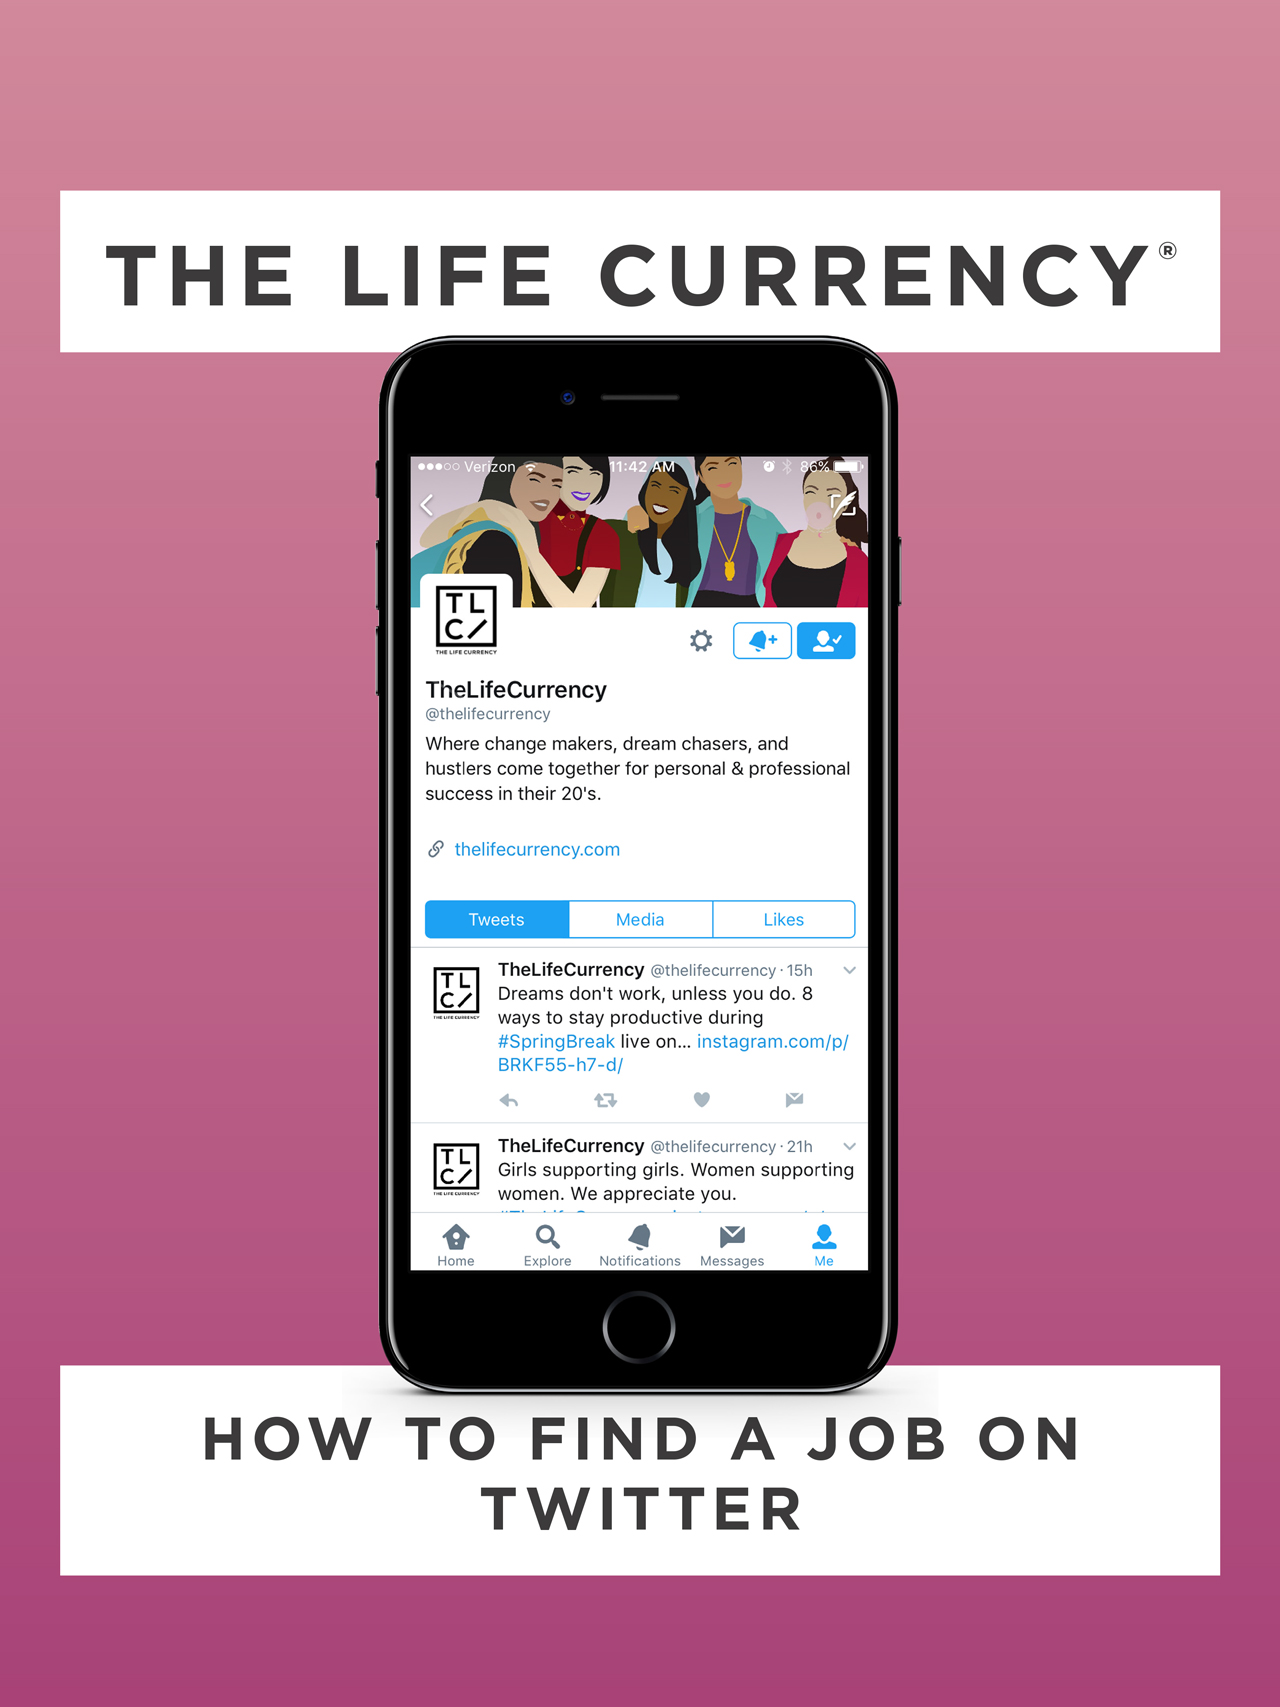 The Life Currency - How to Find a Job on Twitter